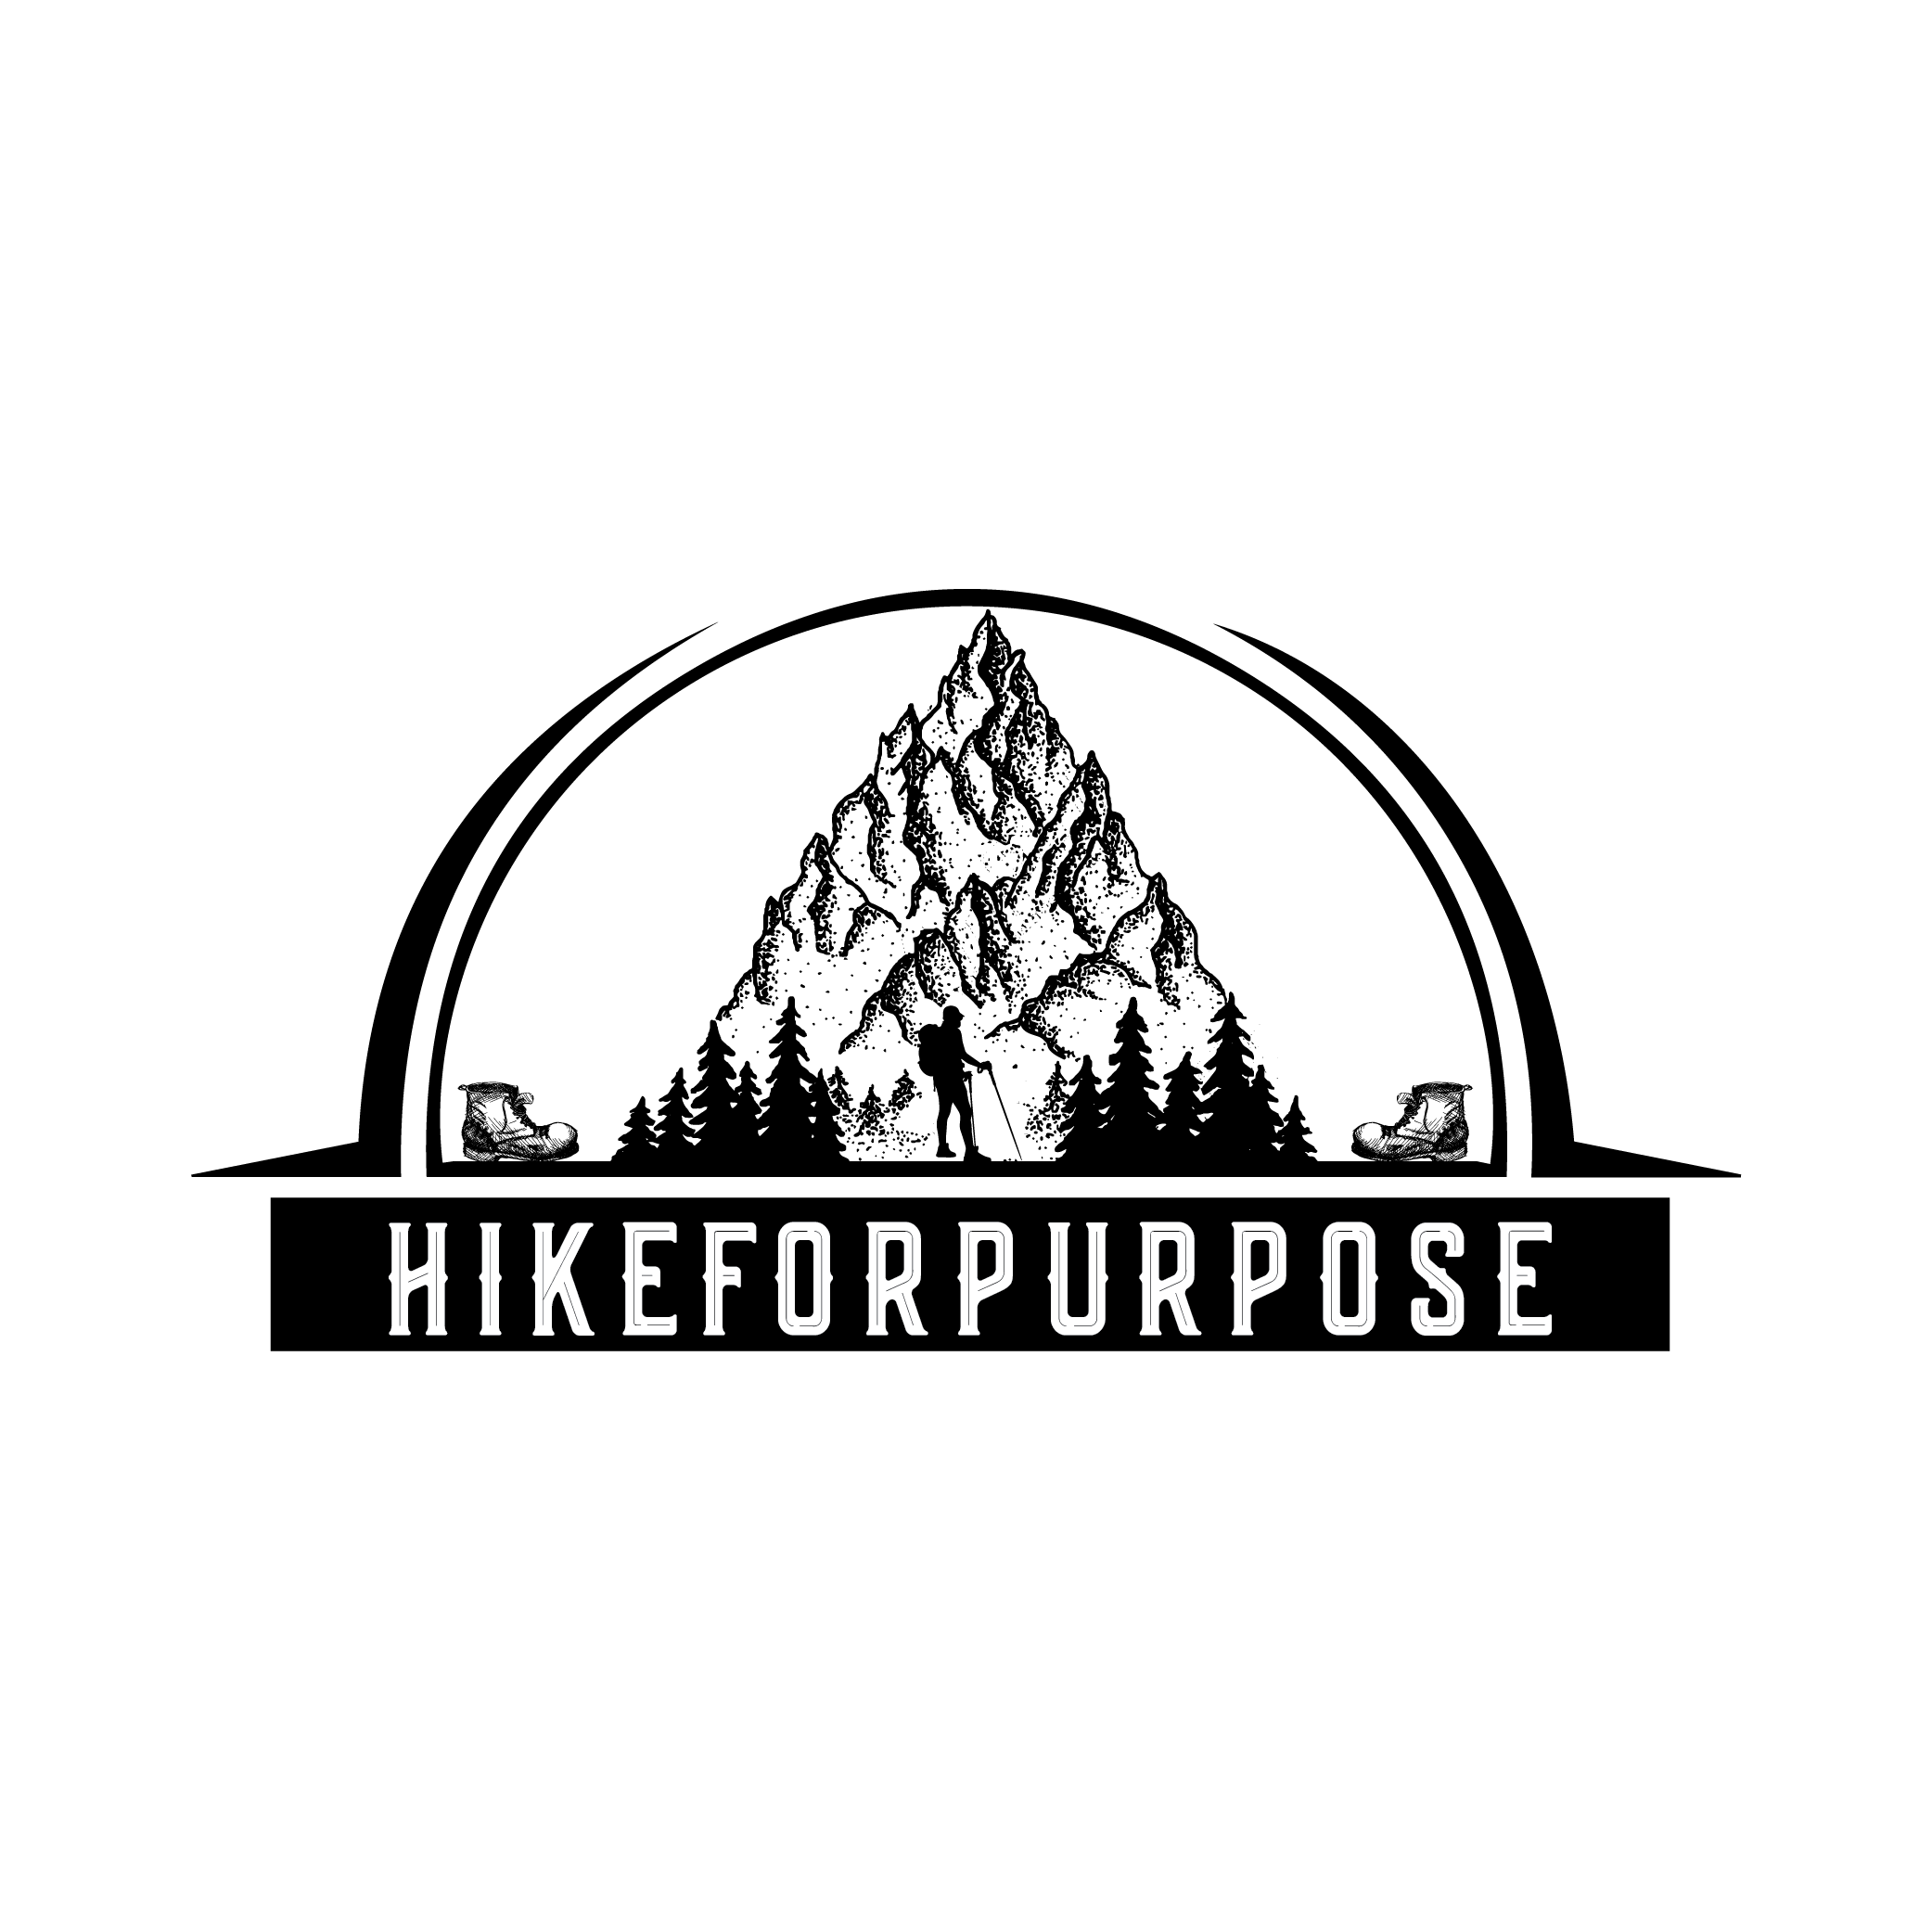 Hike for Purpose